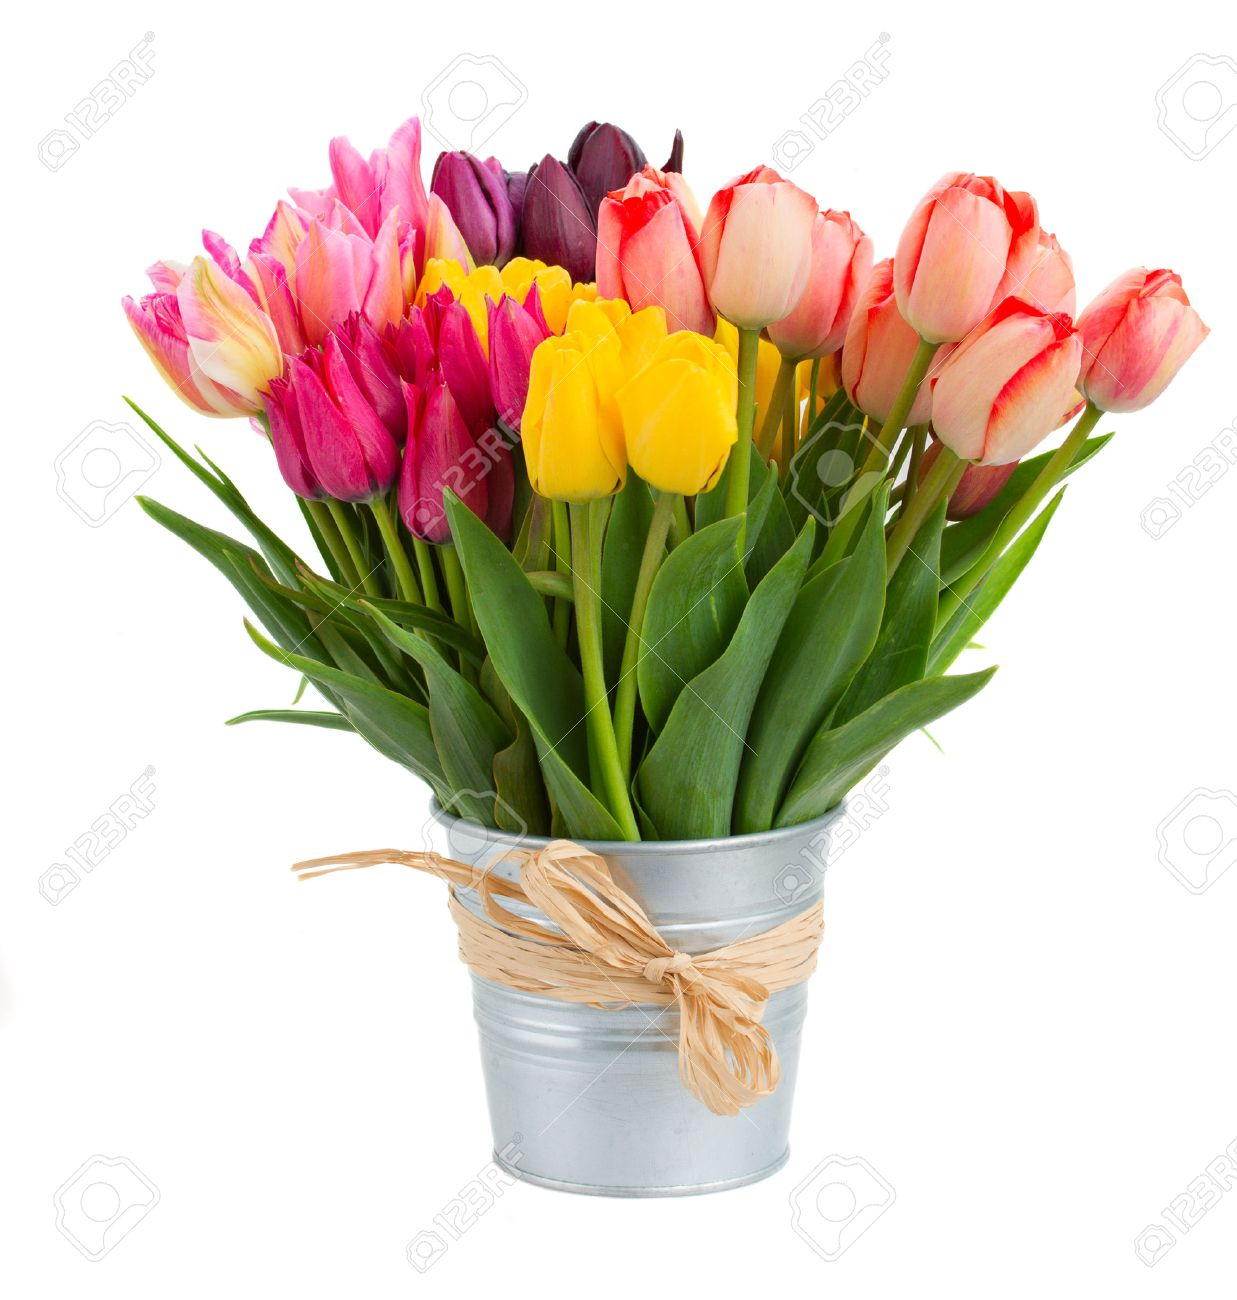 Bunch of spring tulips flowers in metal pot isolated on white - 24865153